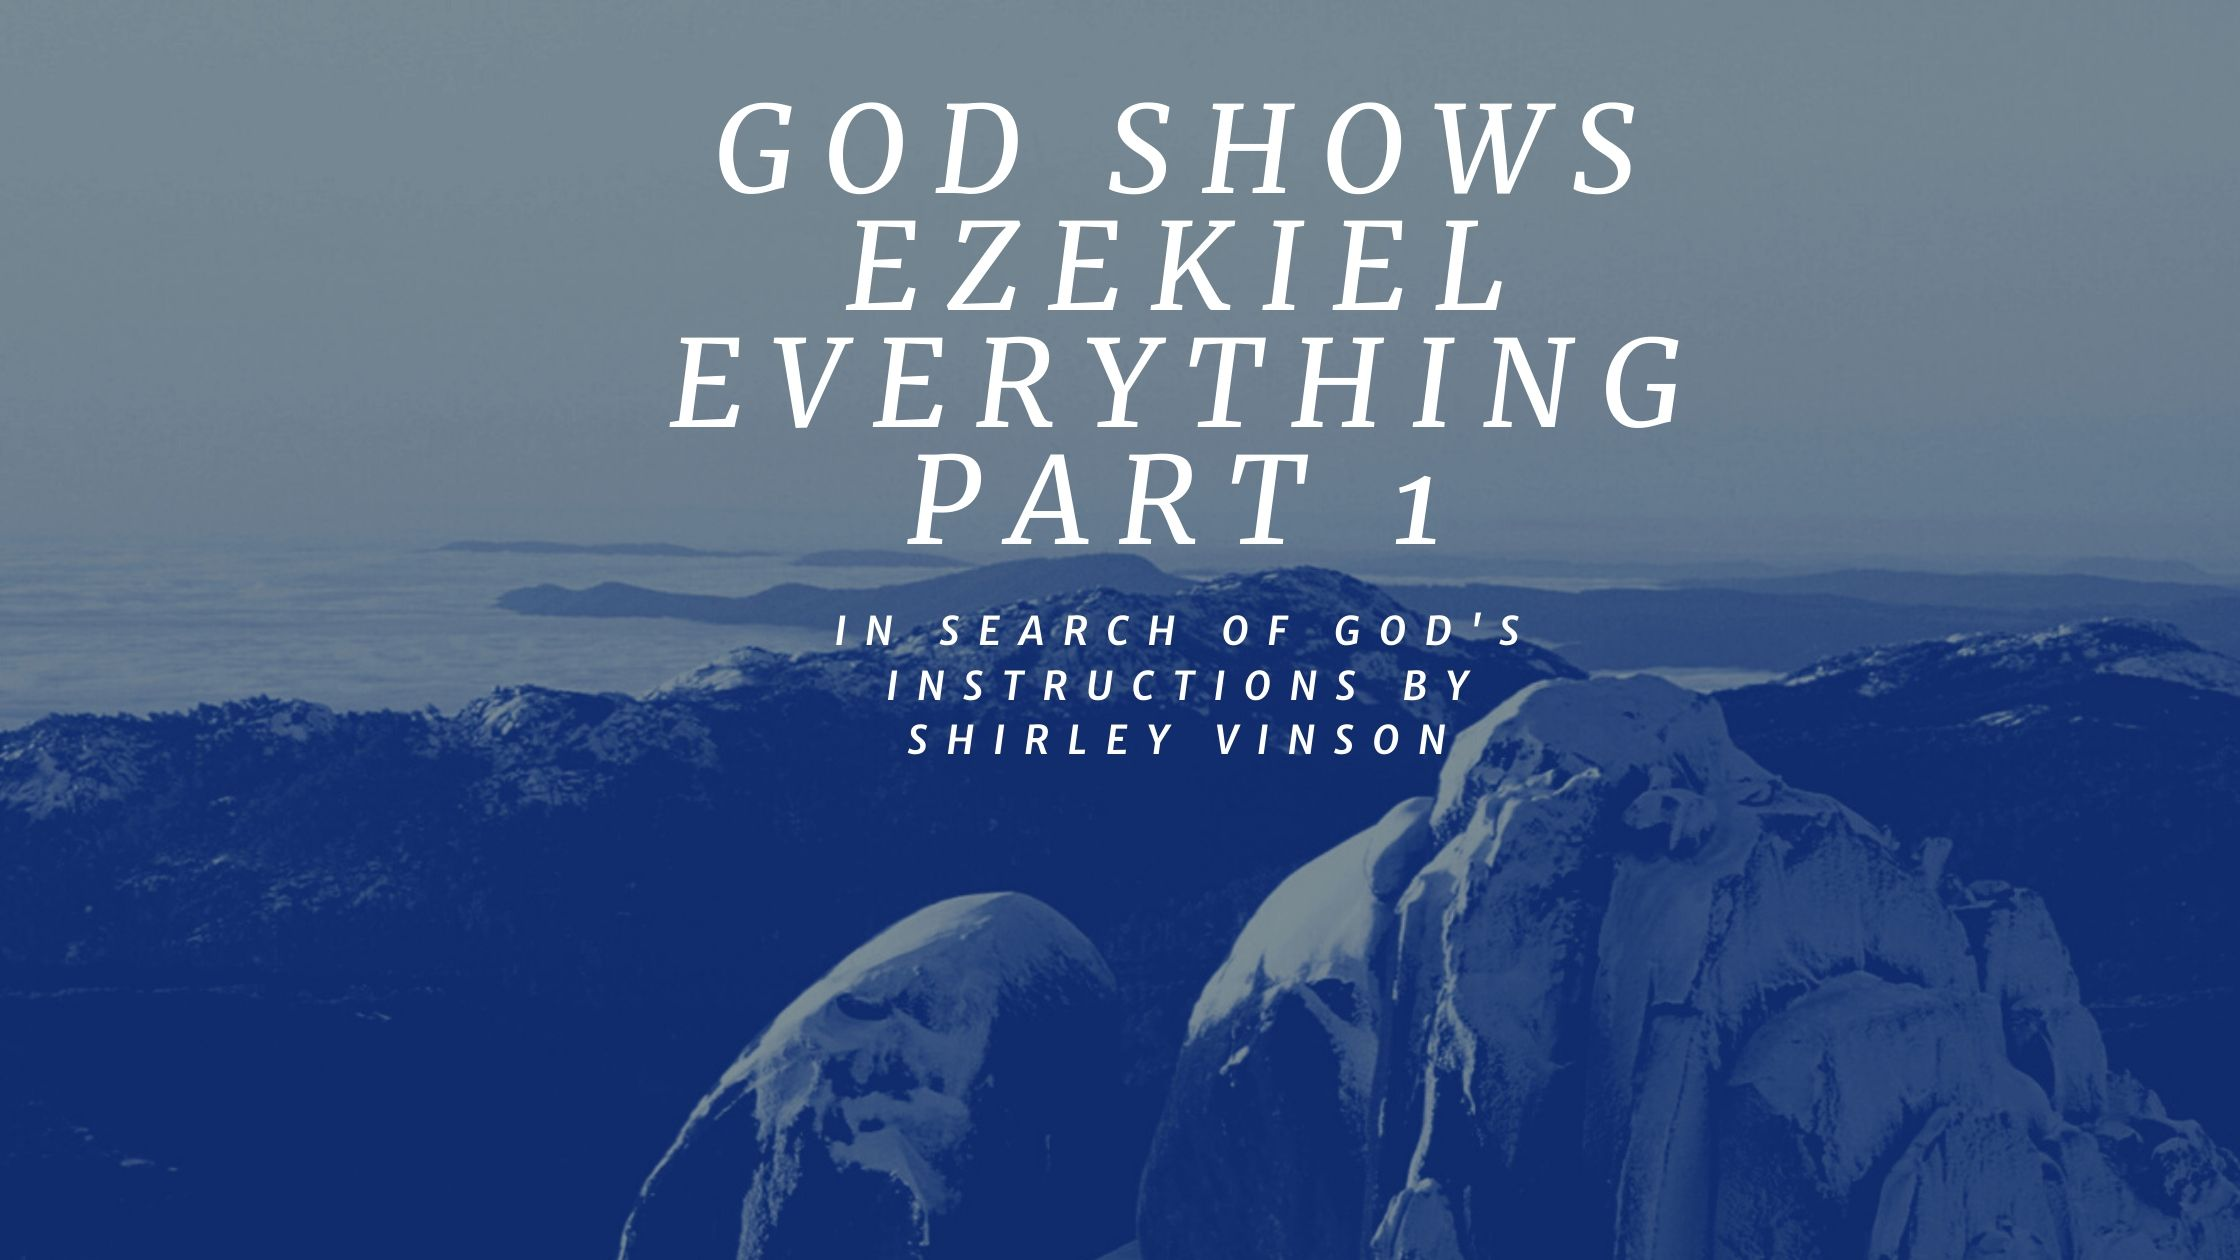 god-shows-ezekiel-everything-graphic-1